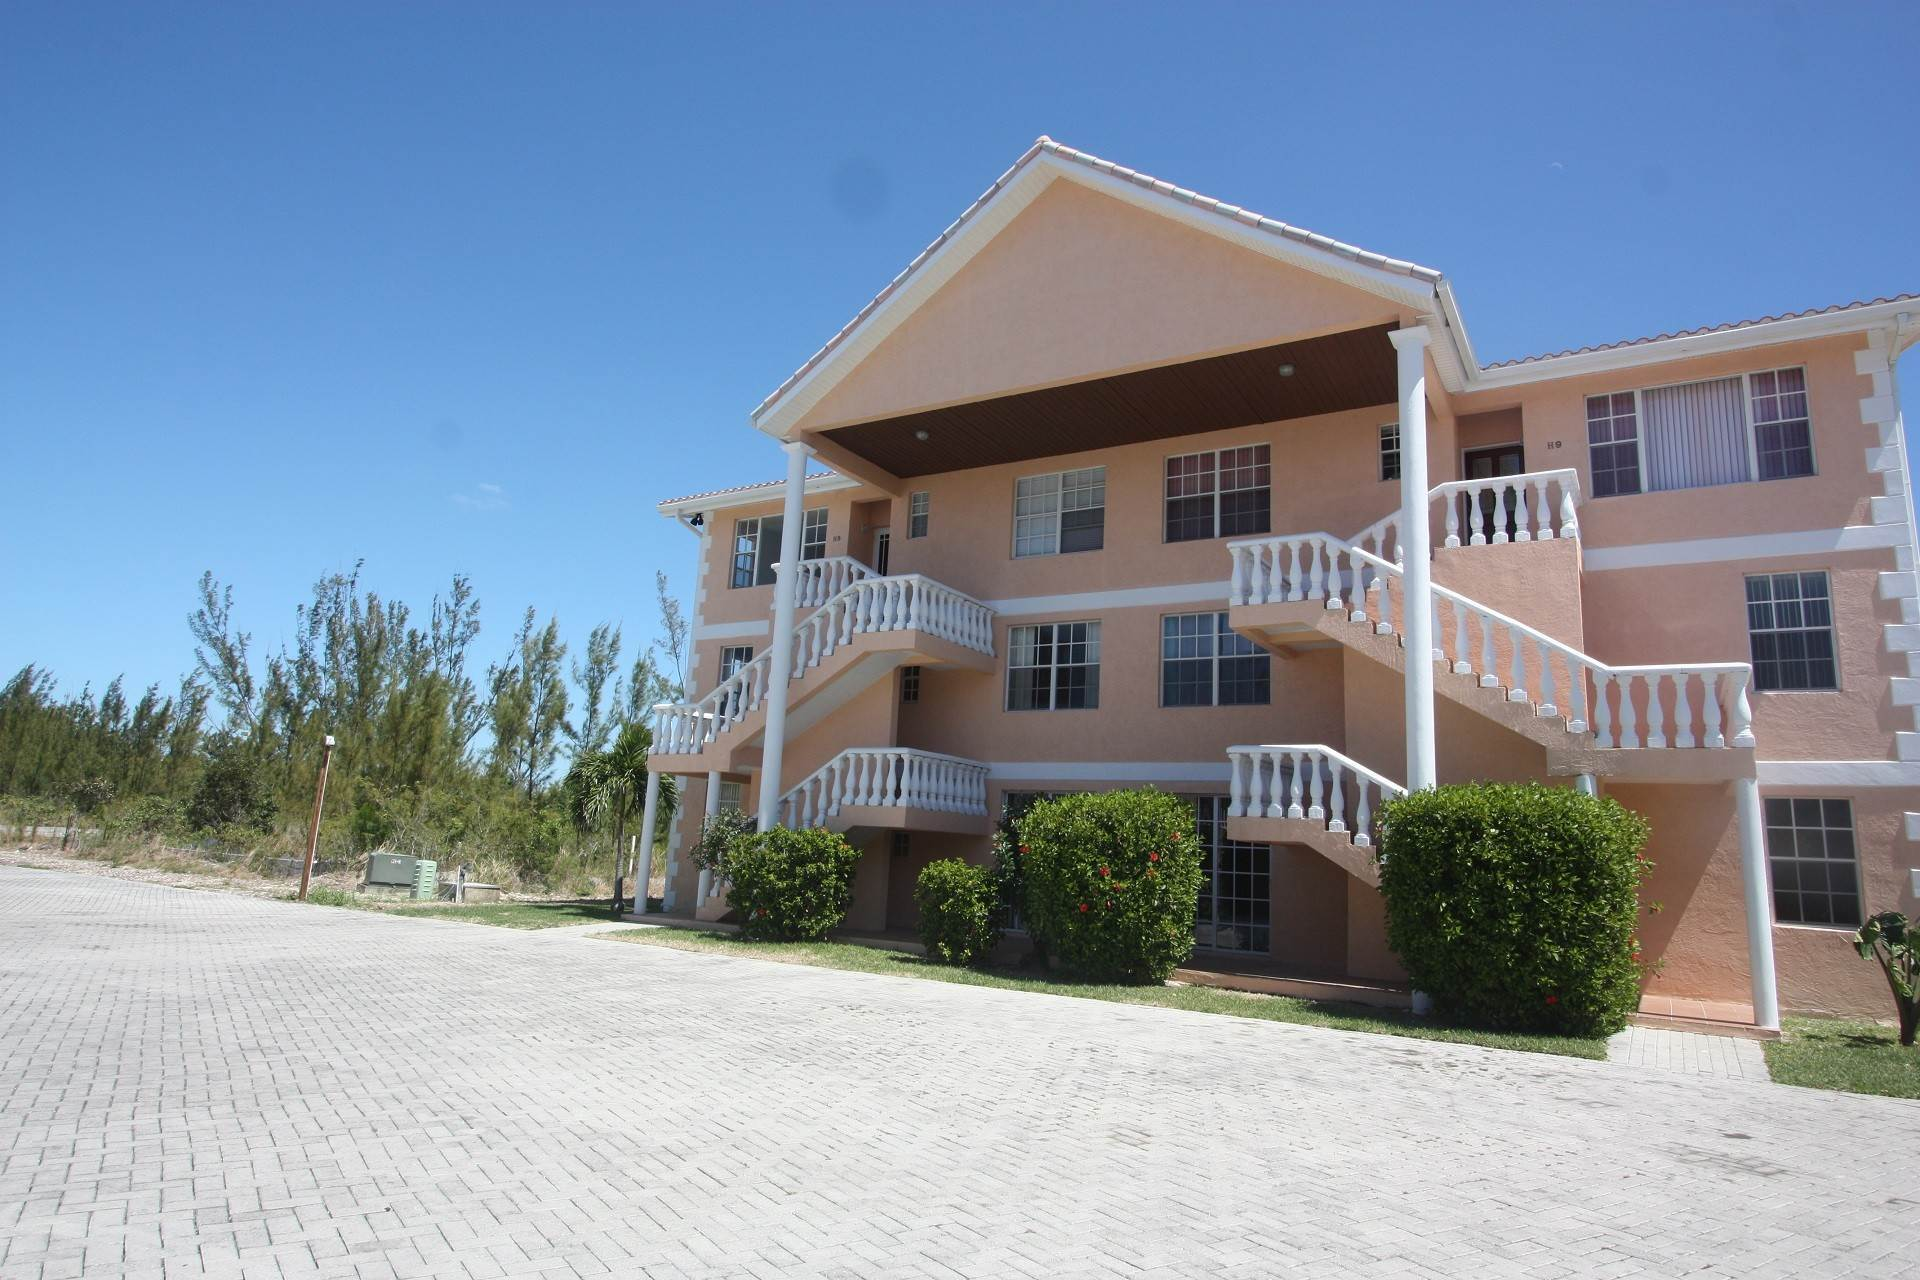 Co-op / Condo for Rent at Water's Edge Condo Bahama Terrace Yacht And Country Club, Freeport And Grand Bahama, Bahamas